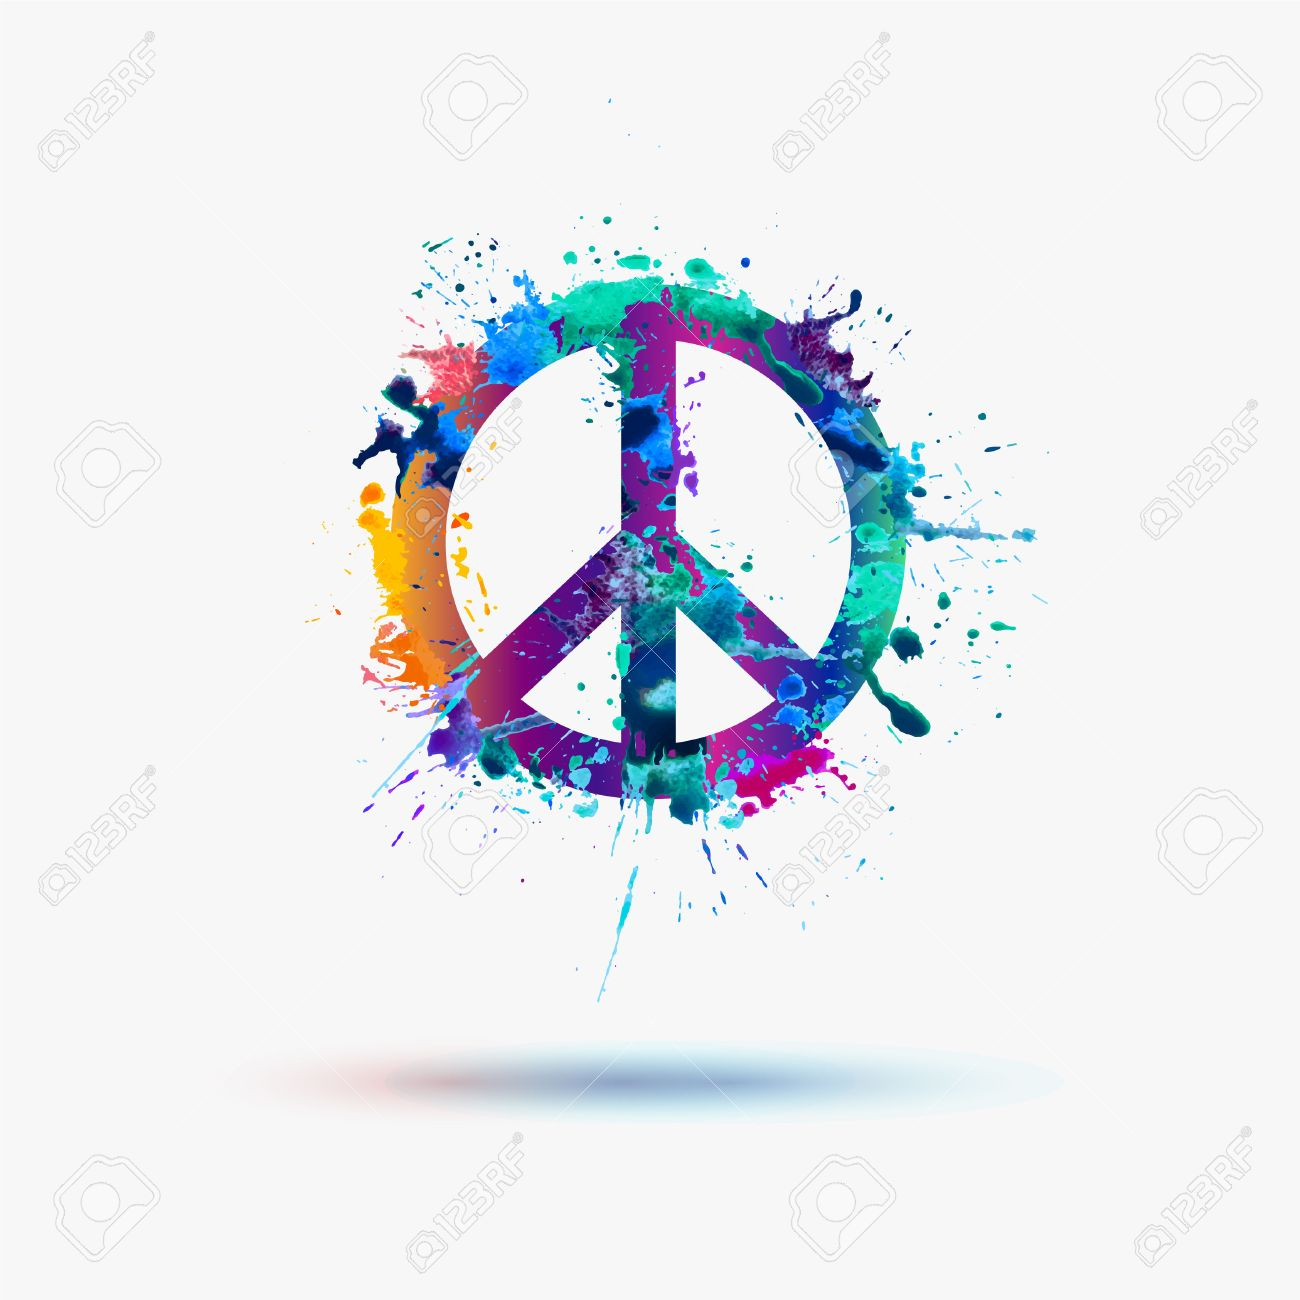 Vector peace symbol in watercolor splashes royalty free cliparts vector peace symbol in watercolor splashes stock vector 41983265 biocorpaavc Images